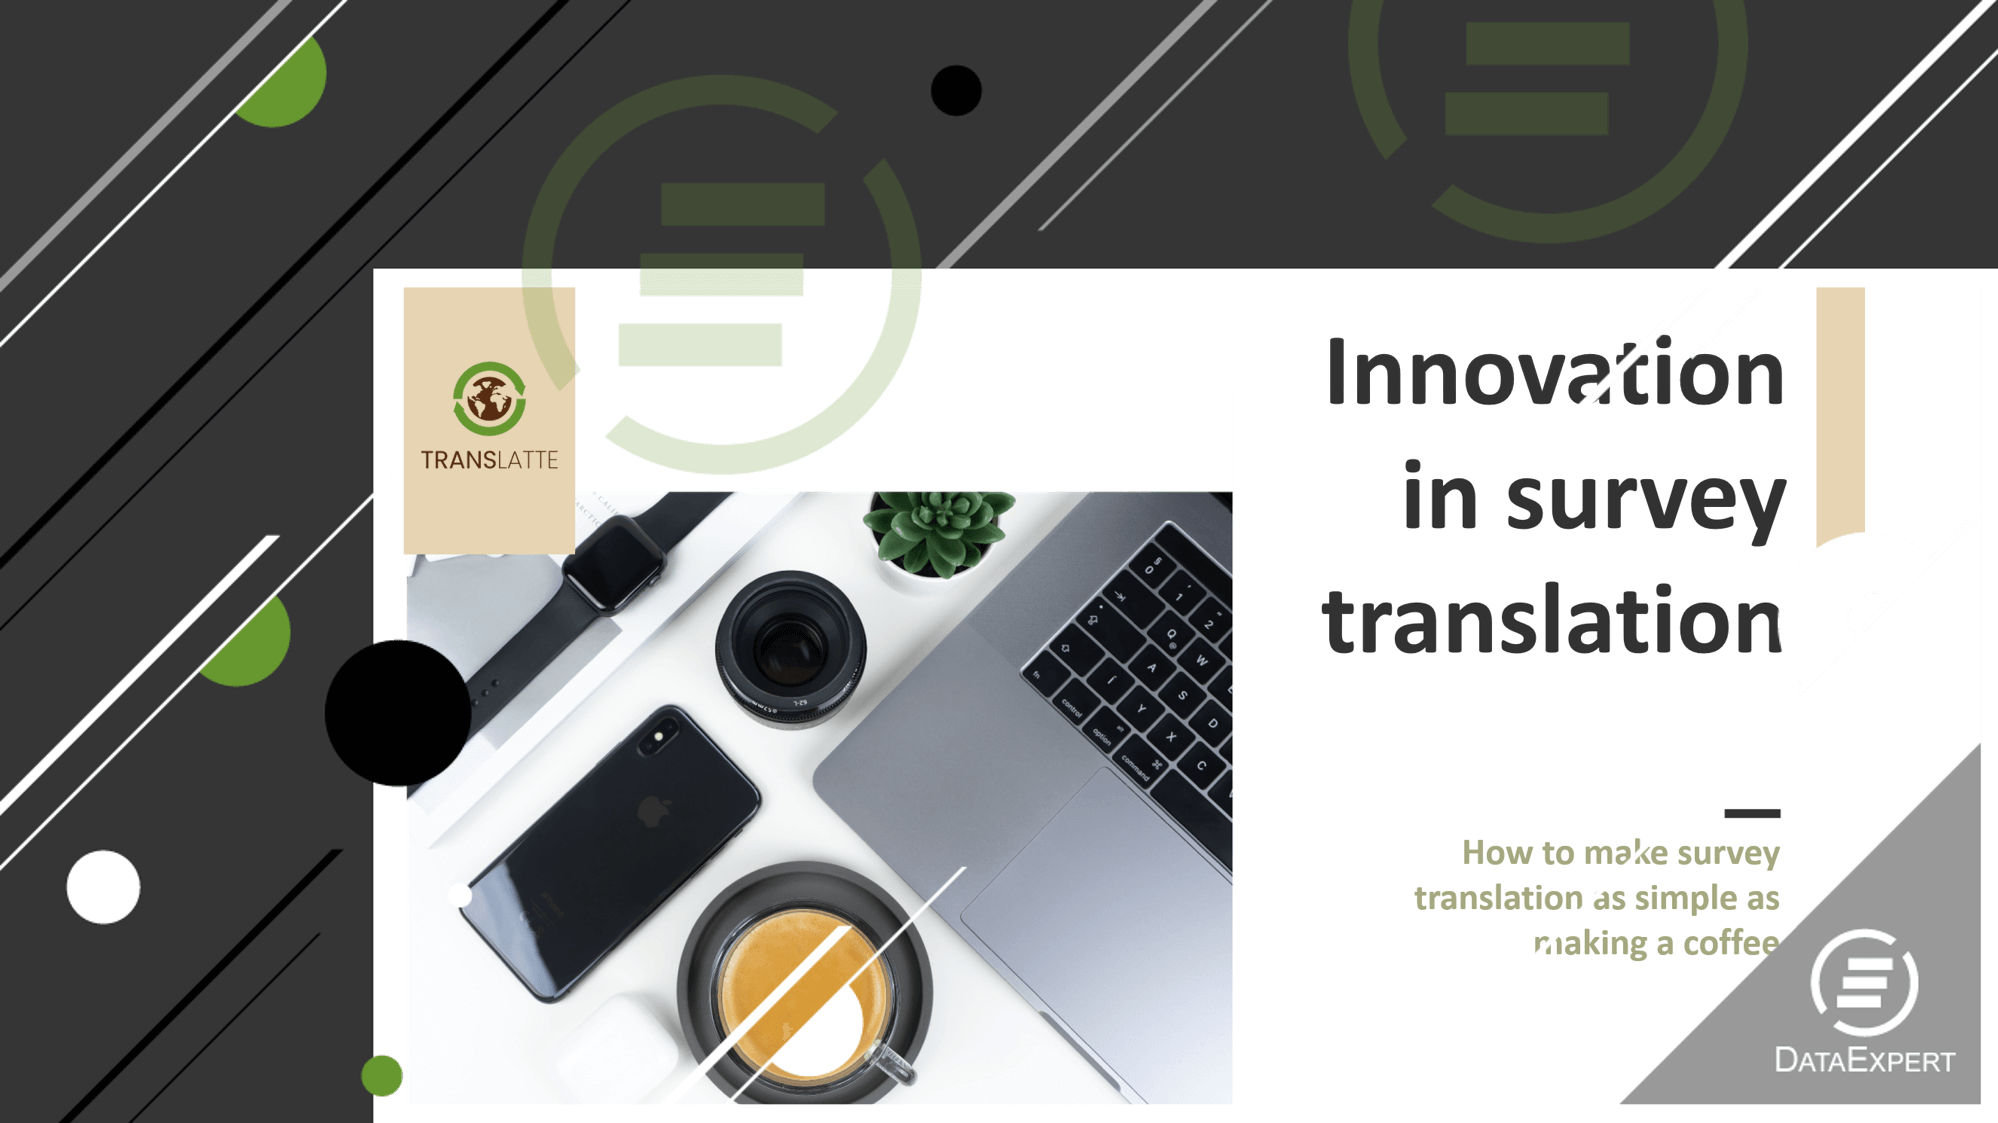 TransLatte: How to make market research survey translation as simple as making a coffee?